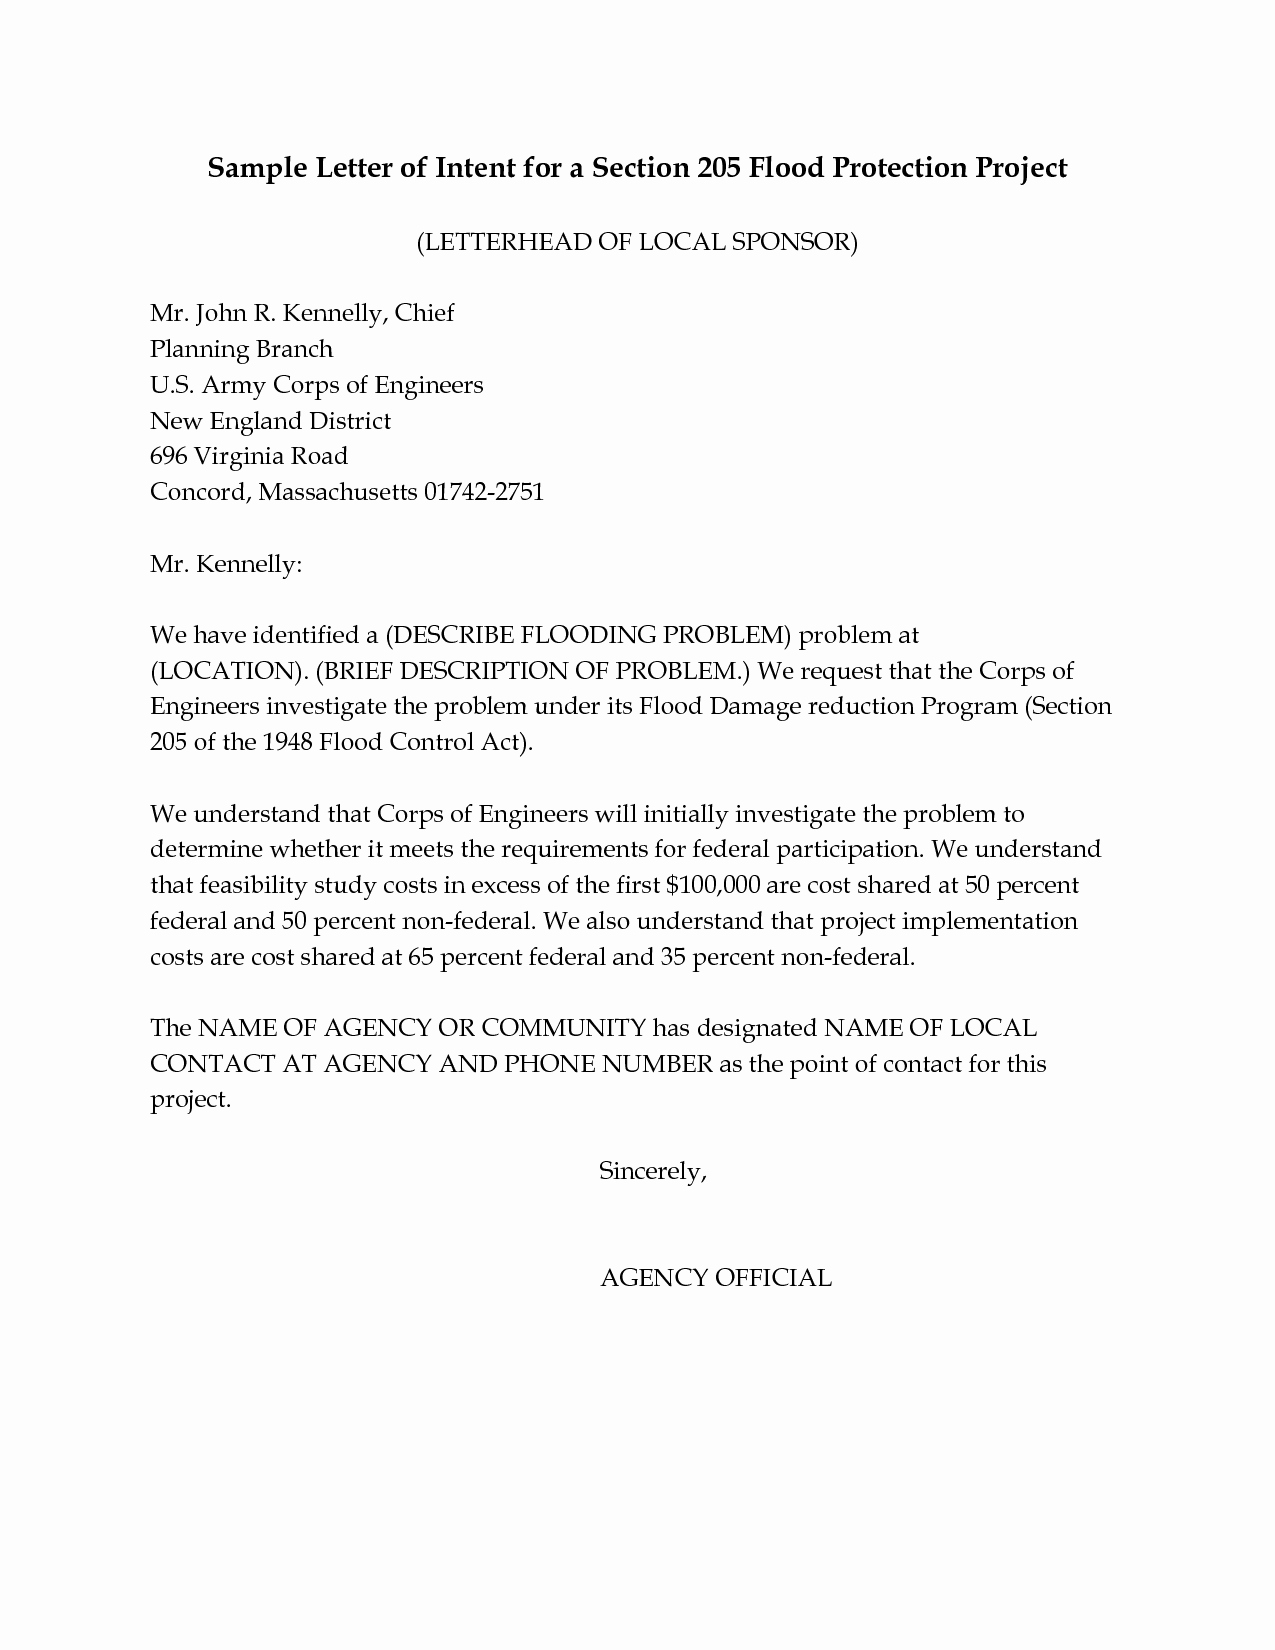 Air force Position Paper Template Awesome Best S Of Military Ficer Letter Intent